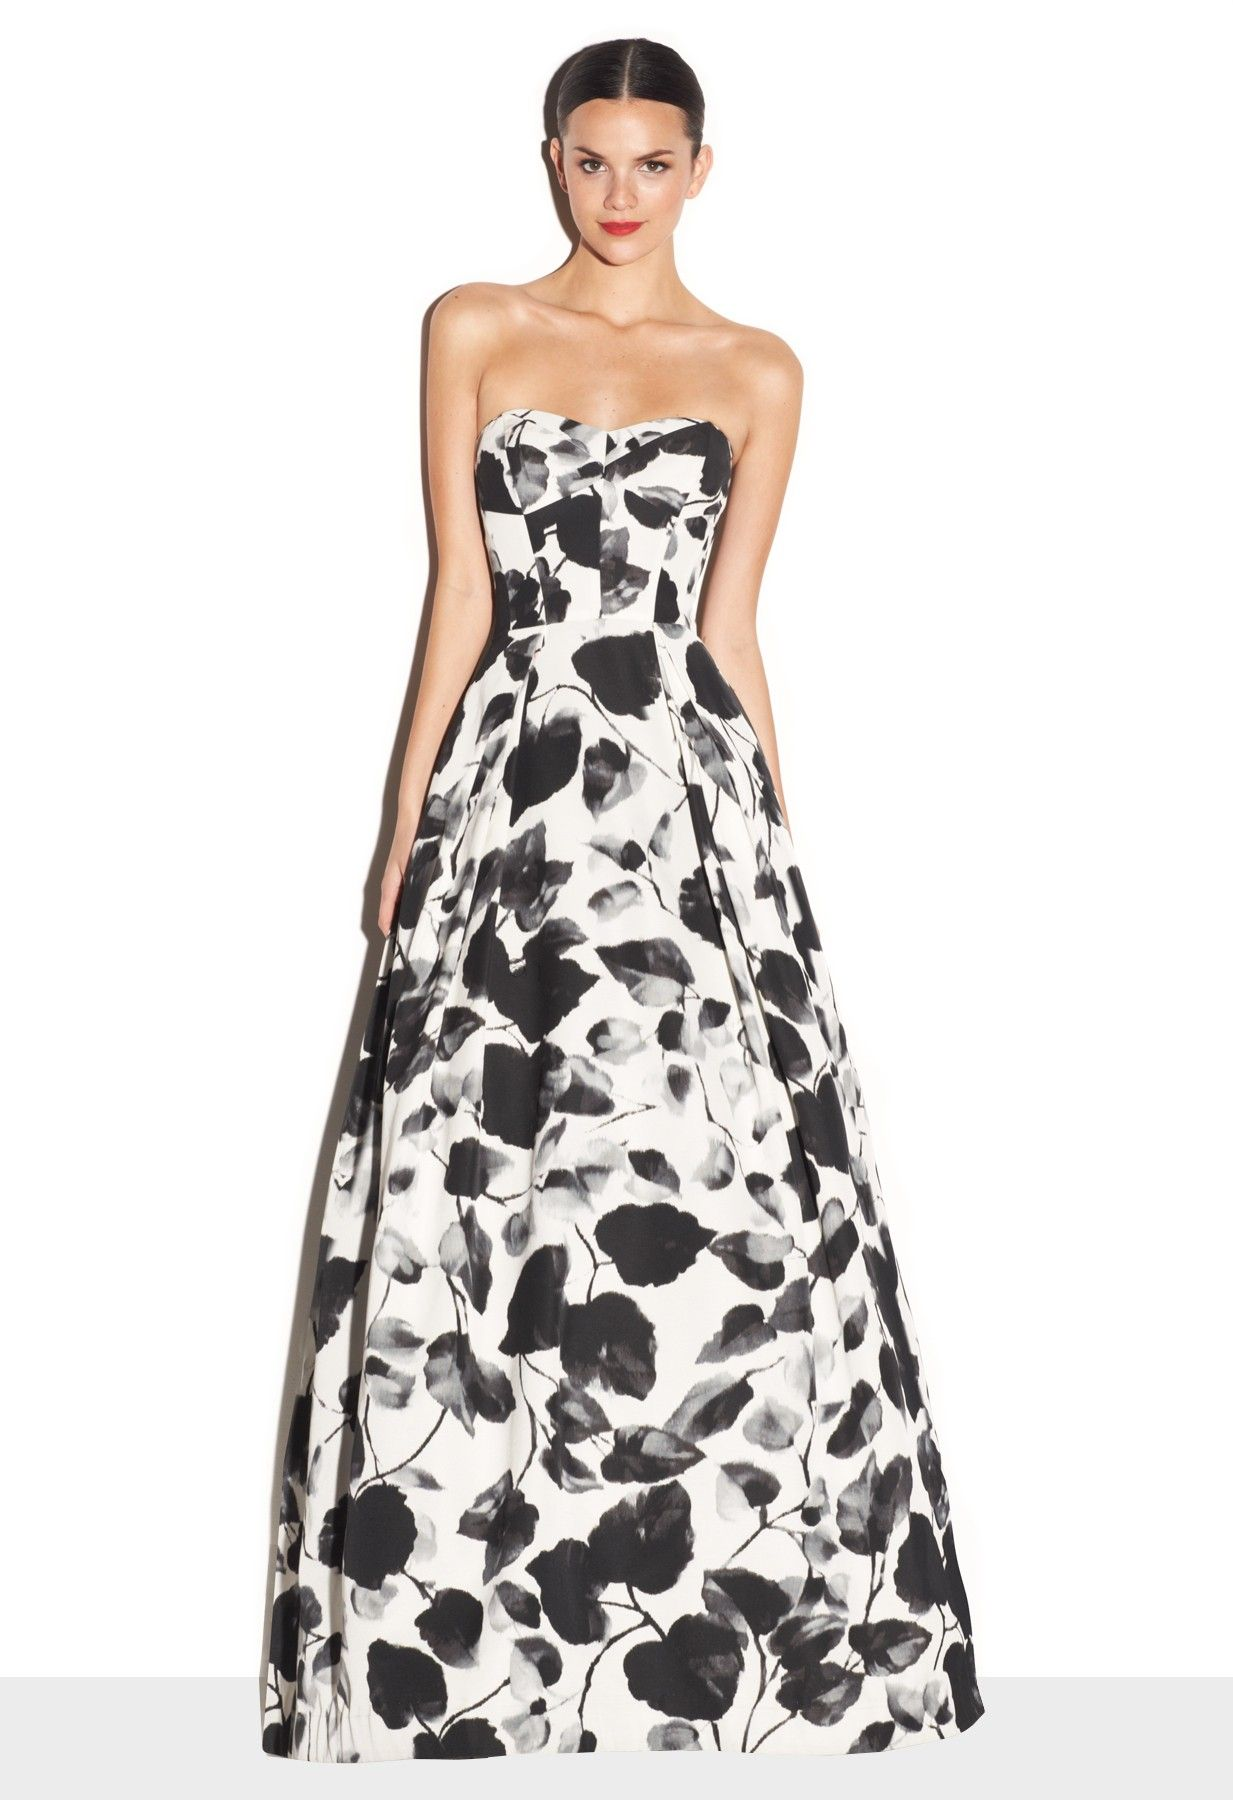 MILLY Ivy Printed Faille Ava Strapless Gown #white #pantonepretty ...